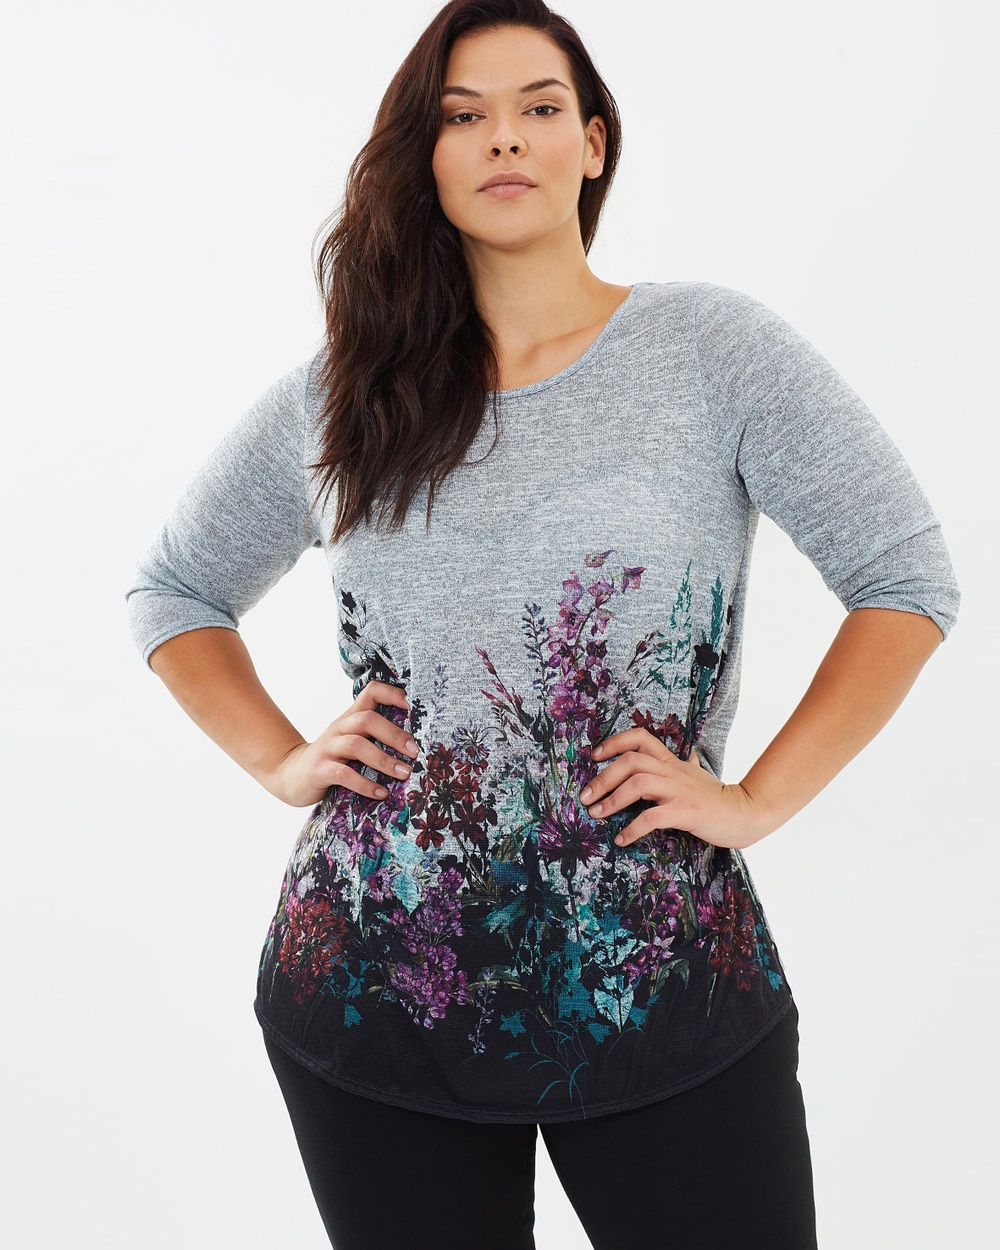 Photo of EVANS EVANS Wild Flower Border Print Tunic Tops Grey Wild Flower Border Print Tunic - For fashion that flatters and celebrates your curves, look no further than EVANS. With a range of on-trend dresses, chic office-ready separates and weekend staples designed with the fuller figure in mind, EVANS is the perfect addition to any style-savvy wardrobe. Our model is wearing a size UK 18 tunic. She usually takes a standard AU 18, is 5'11